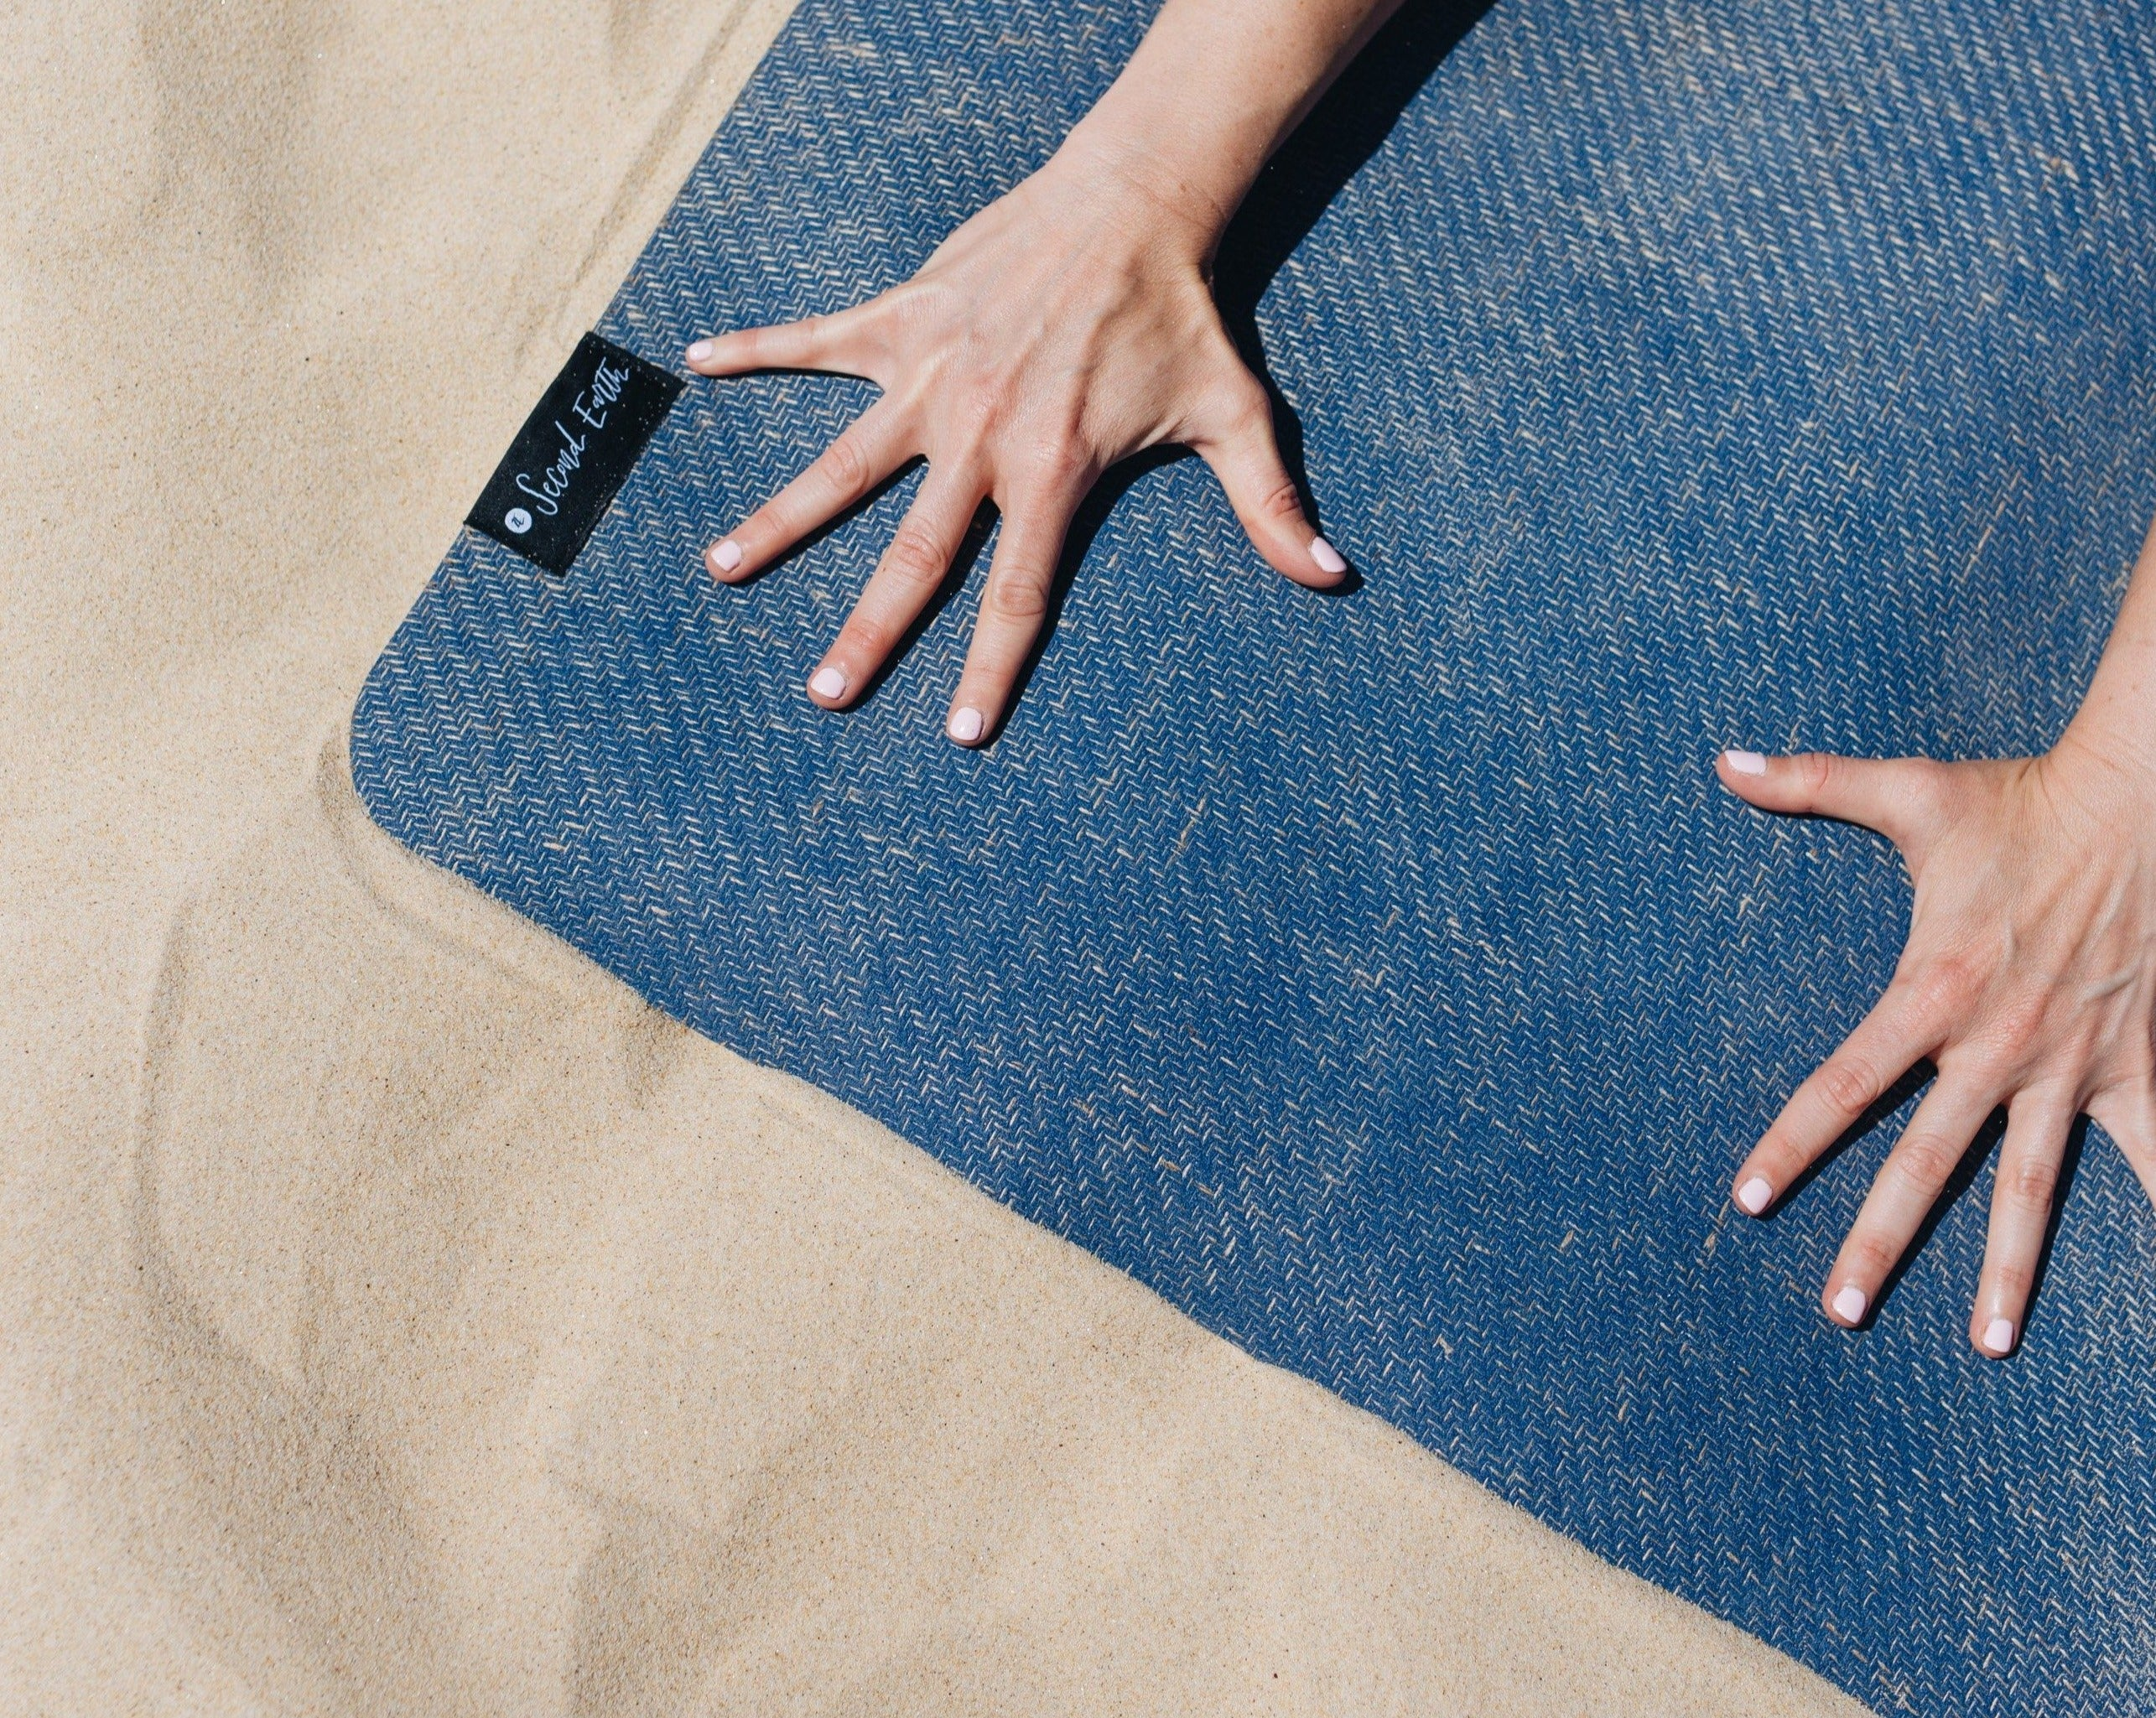 Australia's best yoga mat - 2e Connected Eco Yoga Mat - Ocean Blue